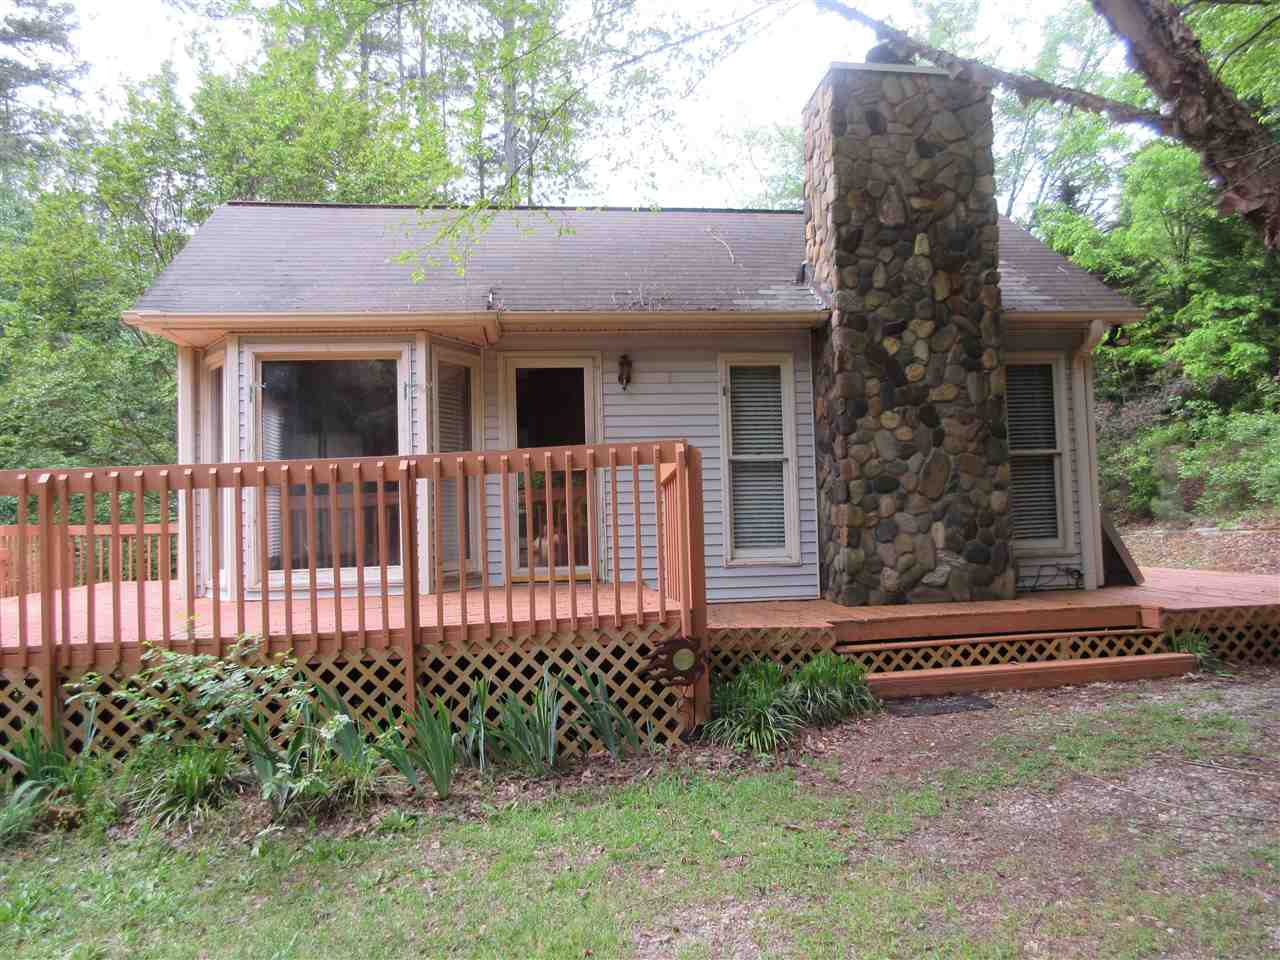 Rental Homes for Rent, ListingId:33099746, location: 723 Old Clemson Hwy Seneca 29672